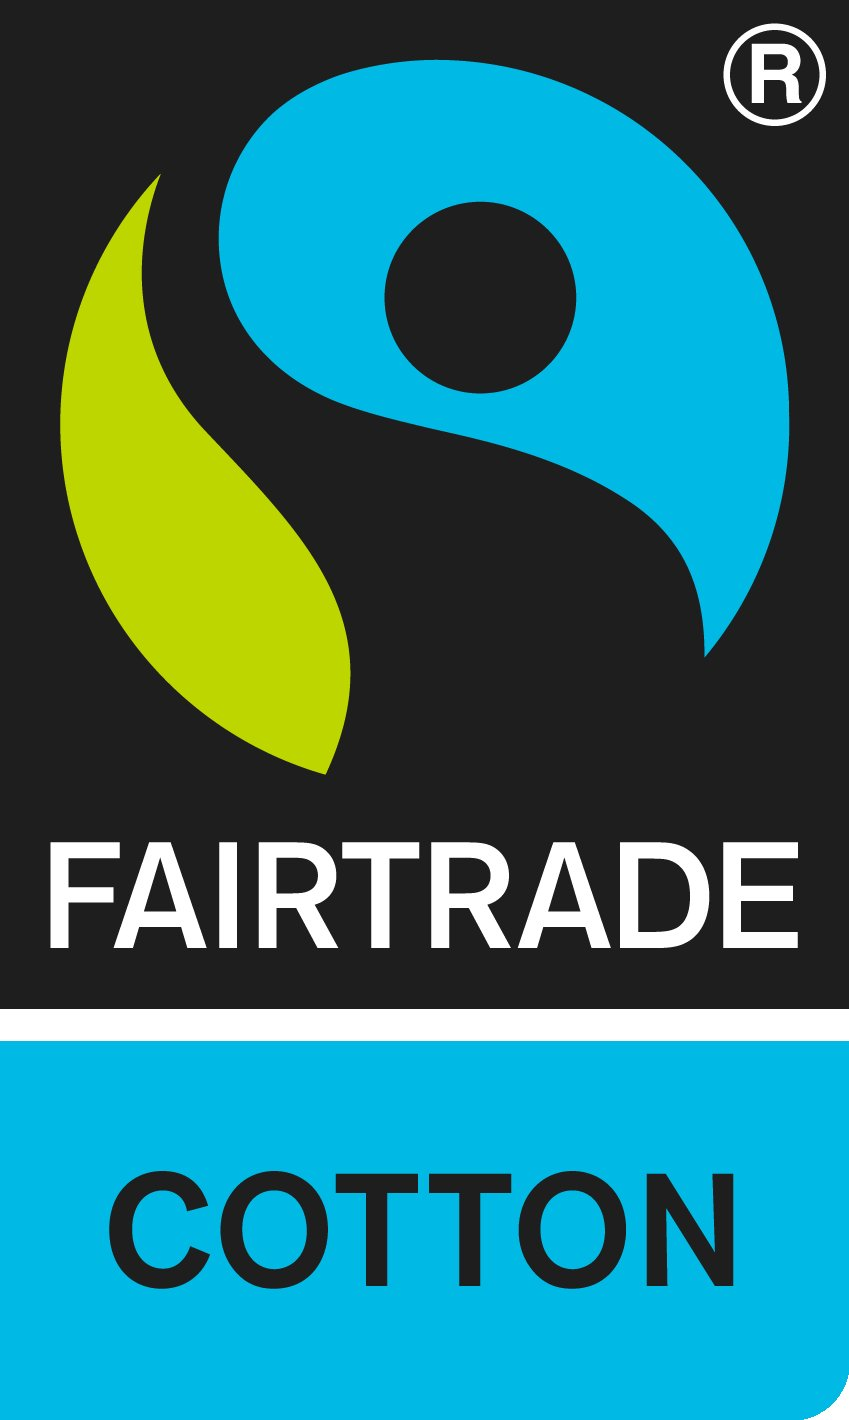 MultiGift is Fairtrade partner van Max Havelaar